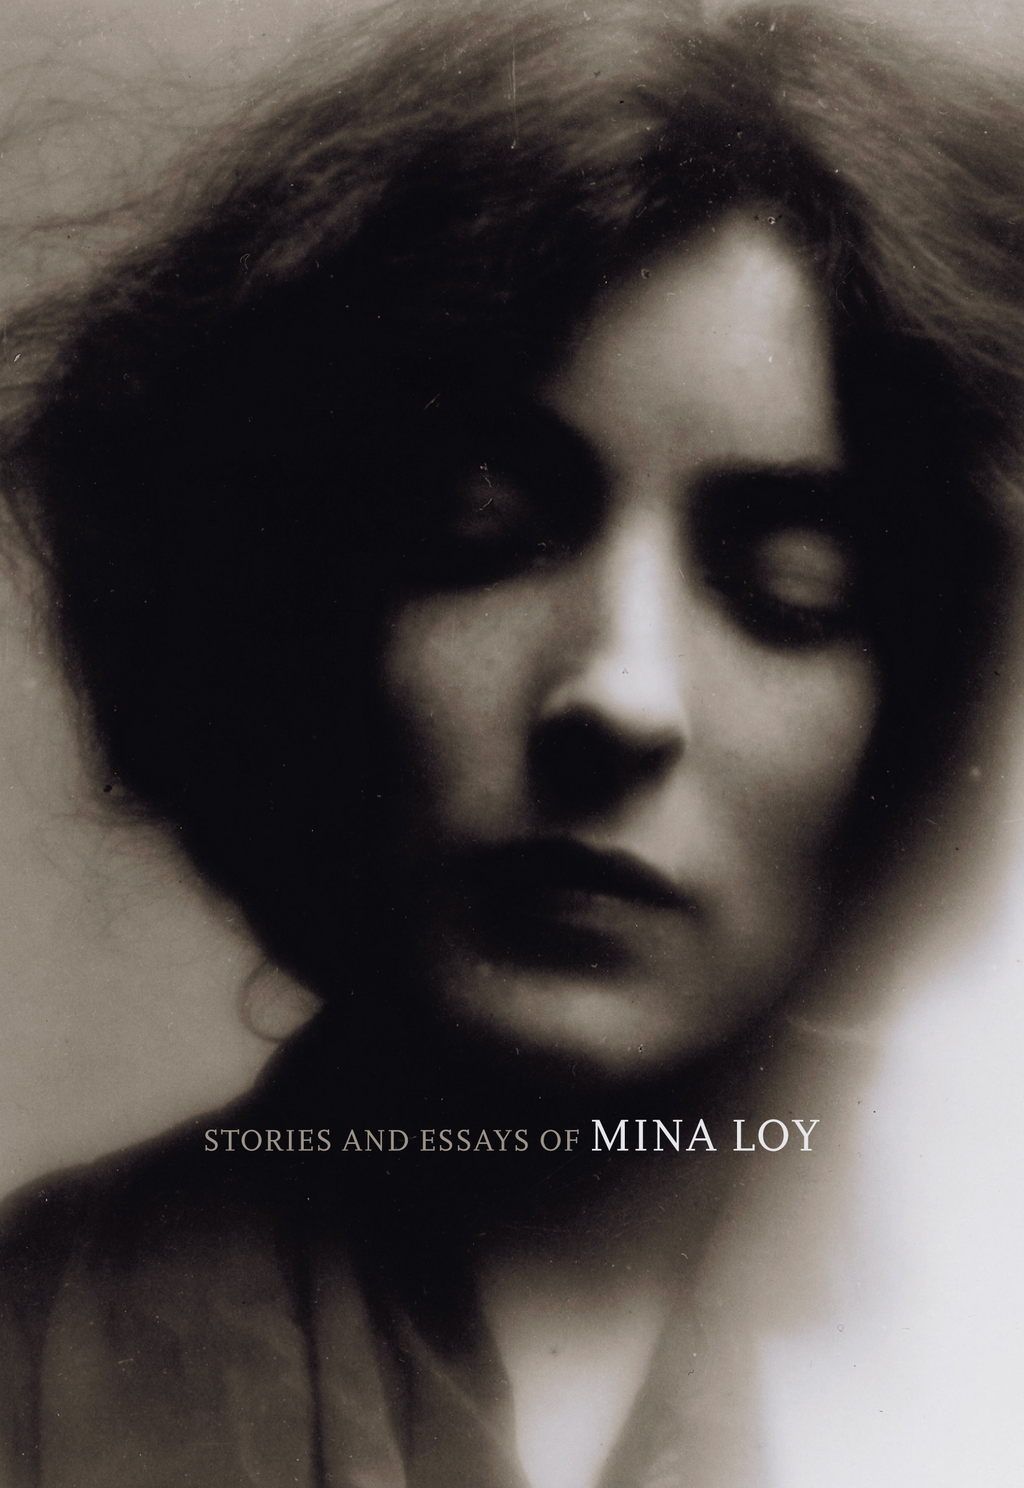 Stories and Essays of Mina Loy (British Literature Series)